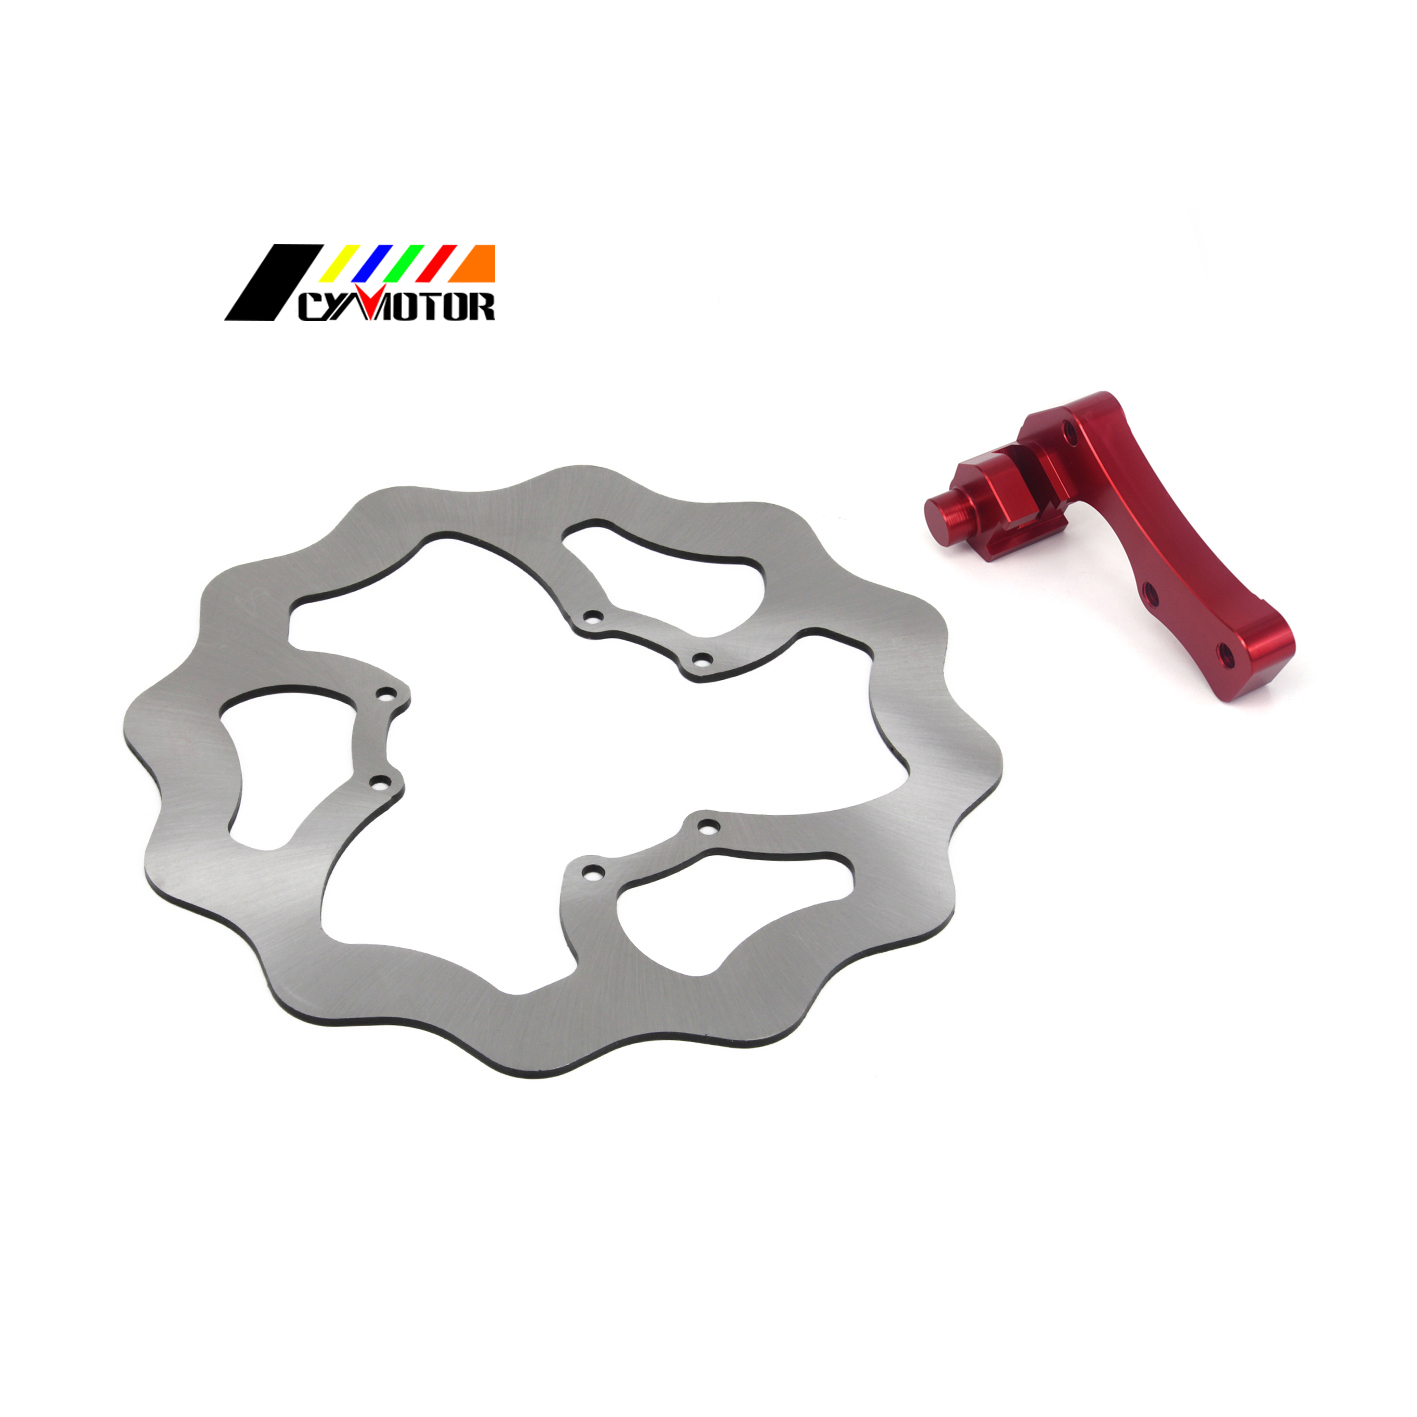 Motorcycle Steel Front Brake Disc And Adapter Bracket For HONDA CR 125 250 R E CR250F CRF250R CRF 250 450 X CRF 250 450 R new arrival motorcycle cnc pivot brake clutch levers for honda crf 250 450 r crf250x crf 450r 450x xr230 motard off road